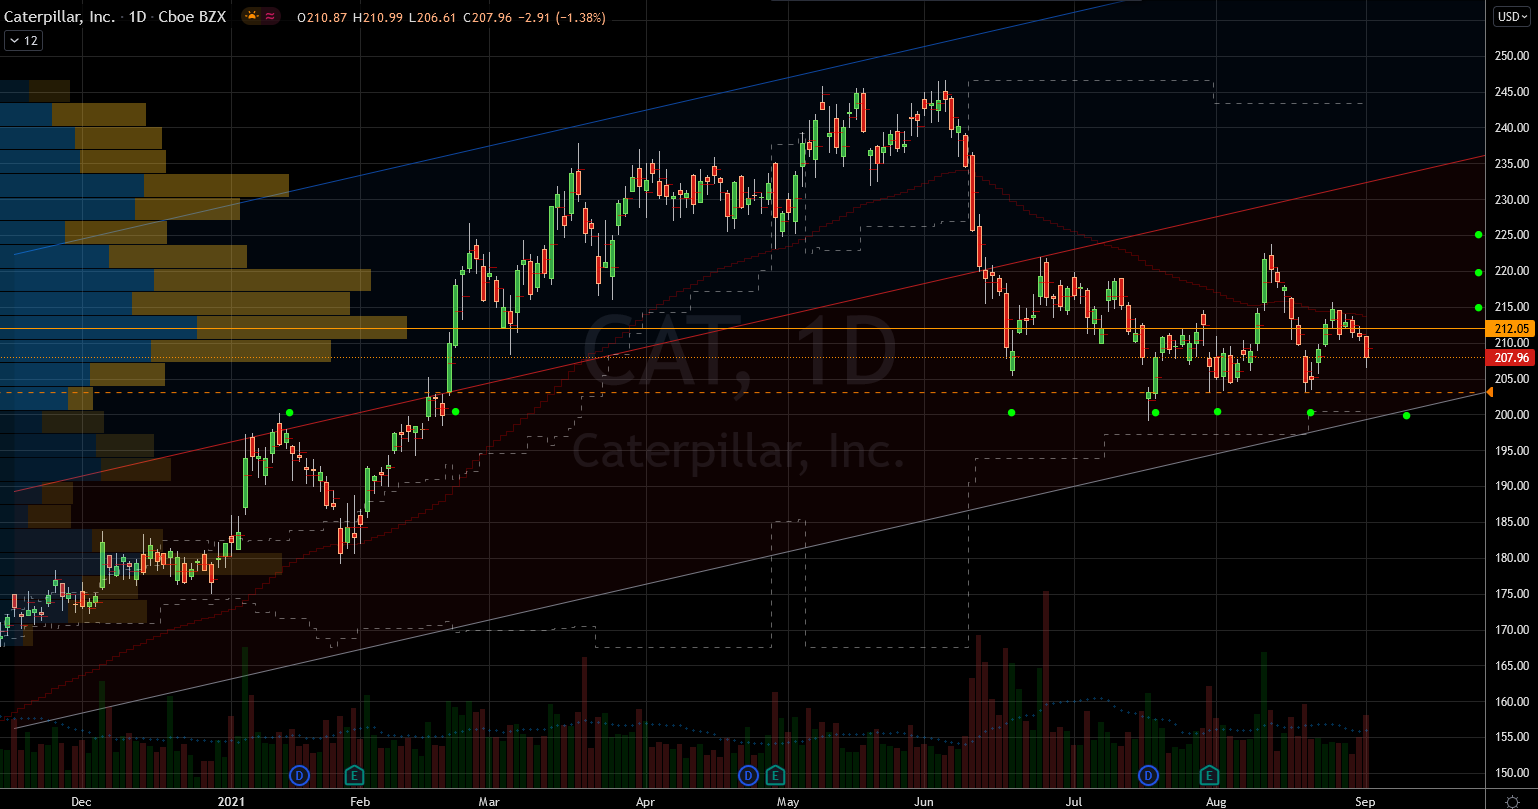 Stocks to Buy: Caterpillar (CAT) Stock Chart Showing Potential Base